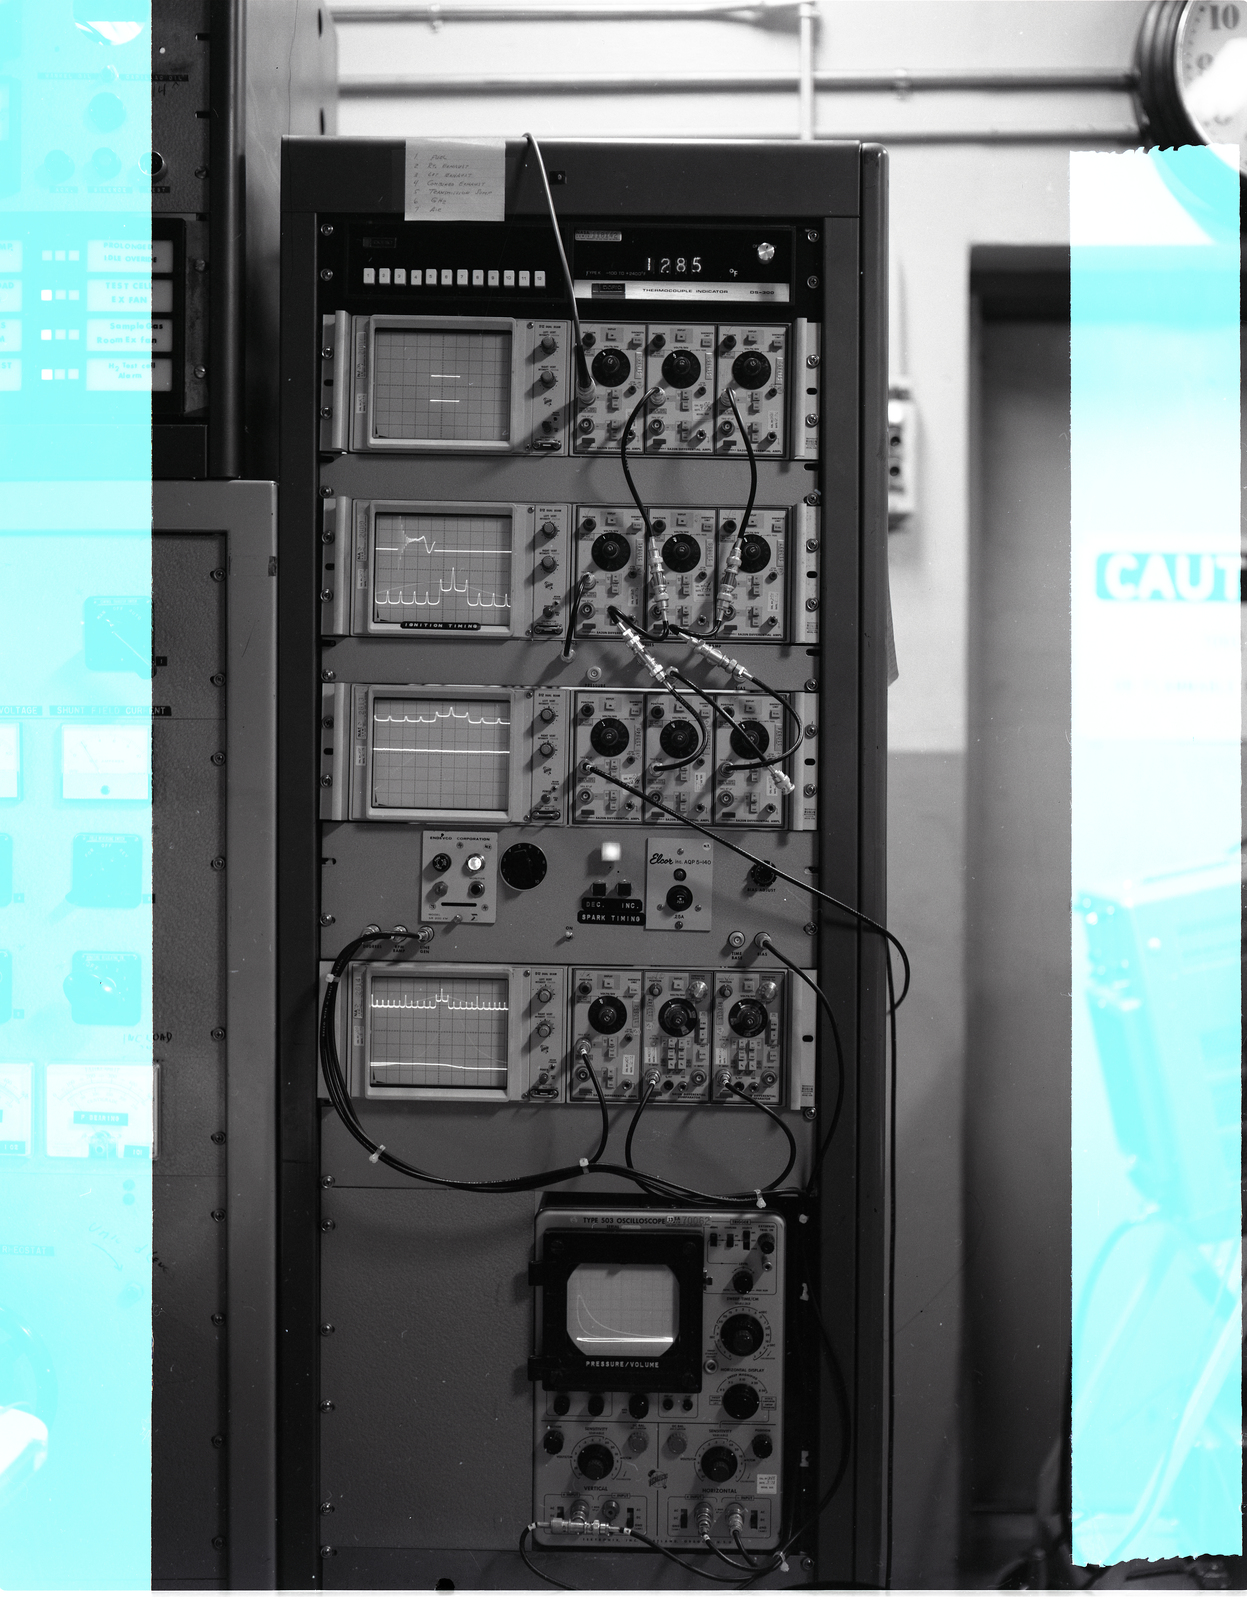 INSTRUMENTS ON CADILLAC ENGINE - OSCILLOSCOPES IN CONTROL ROOM